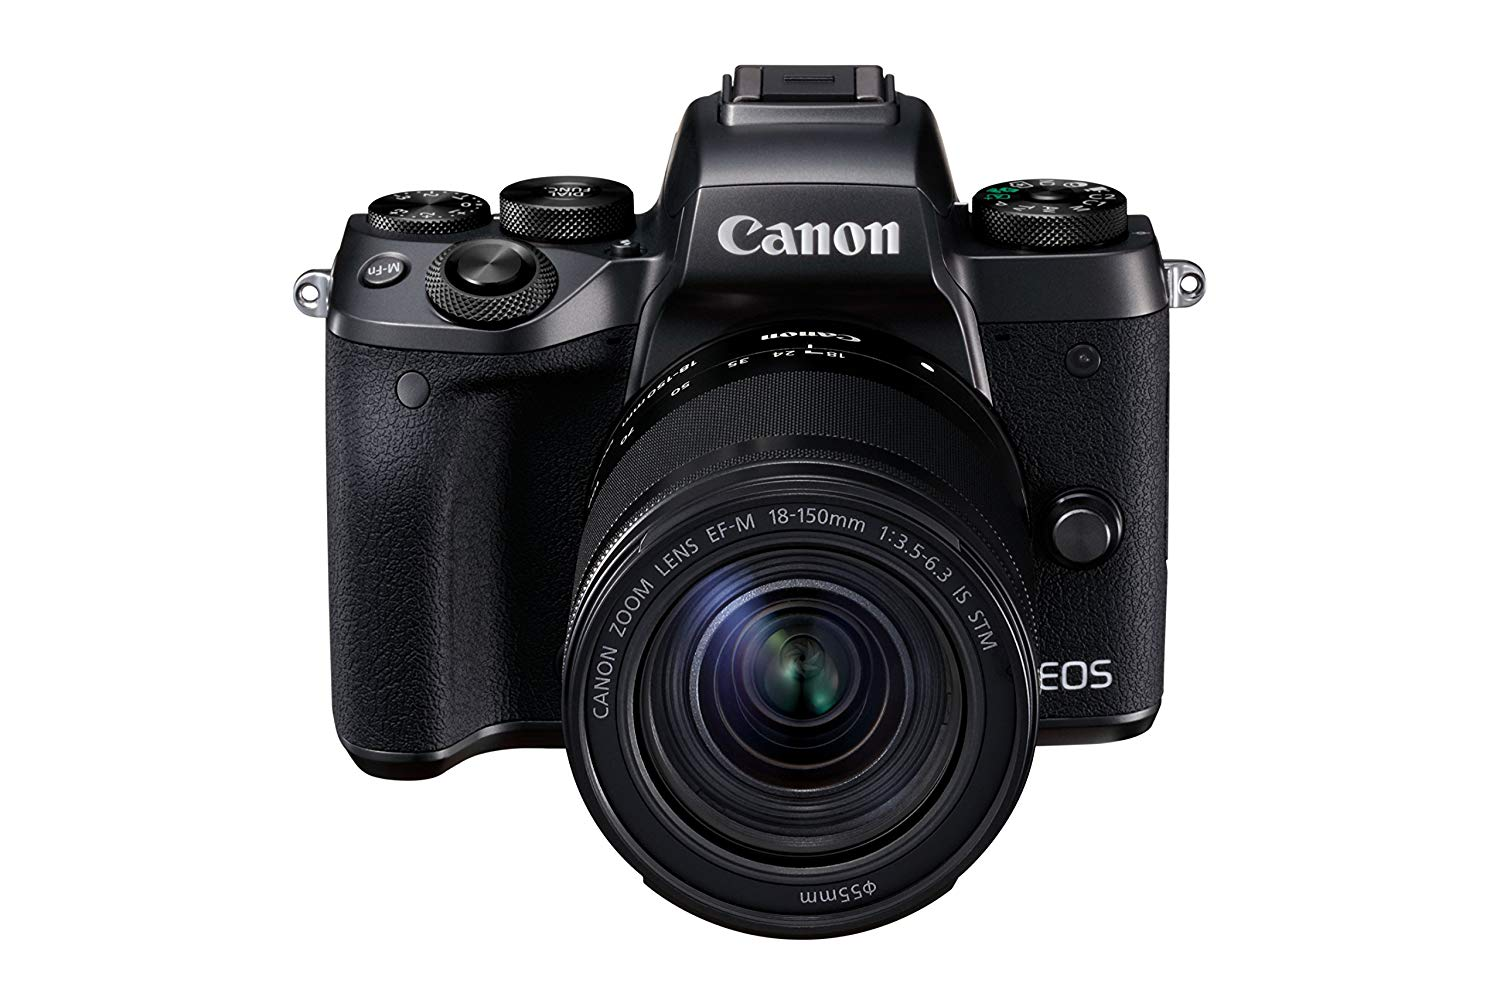 Canon EOS M5 Mirrorless Camera with EF-M 18-150 mm Lens for £664.99